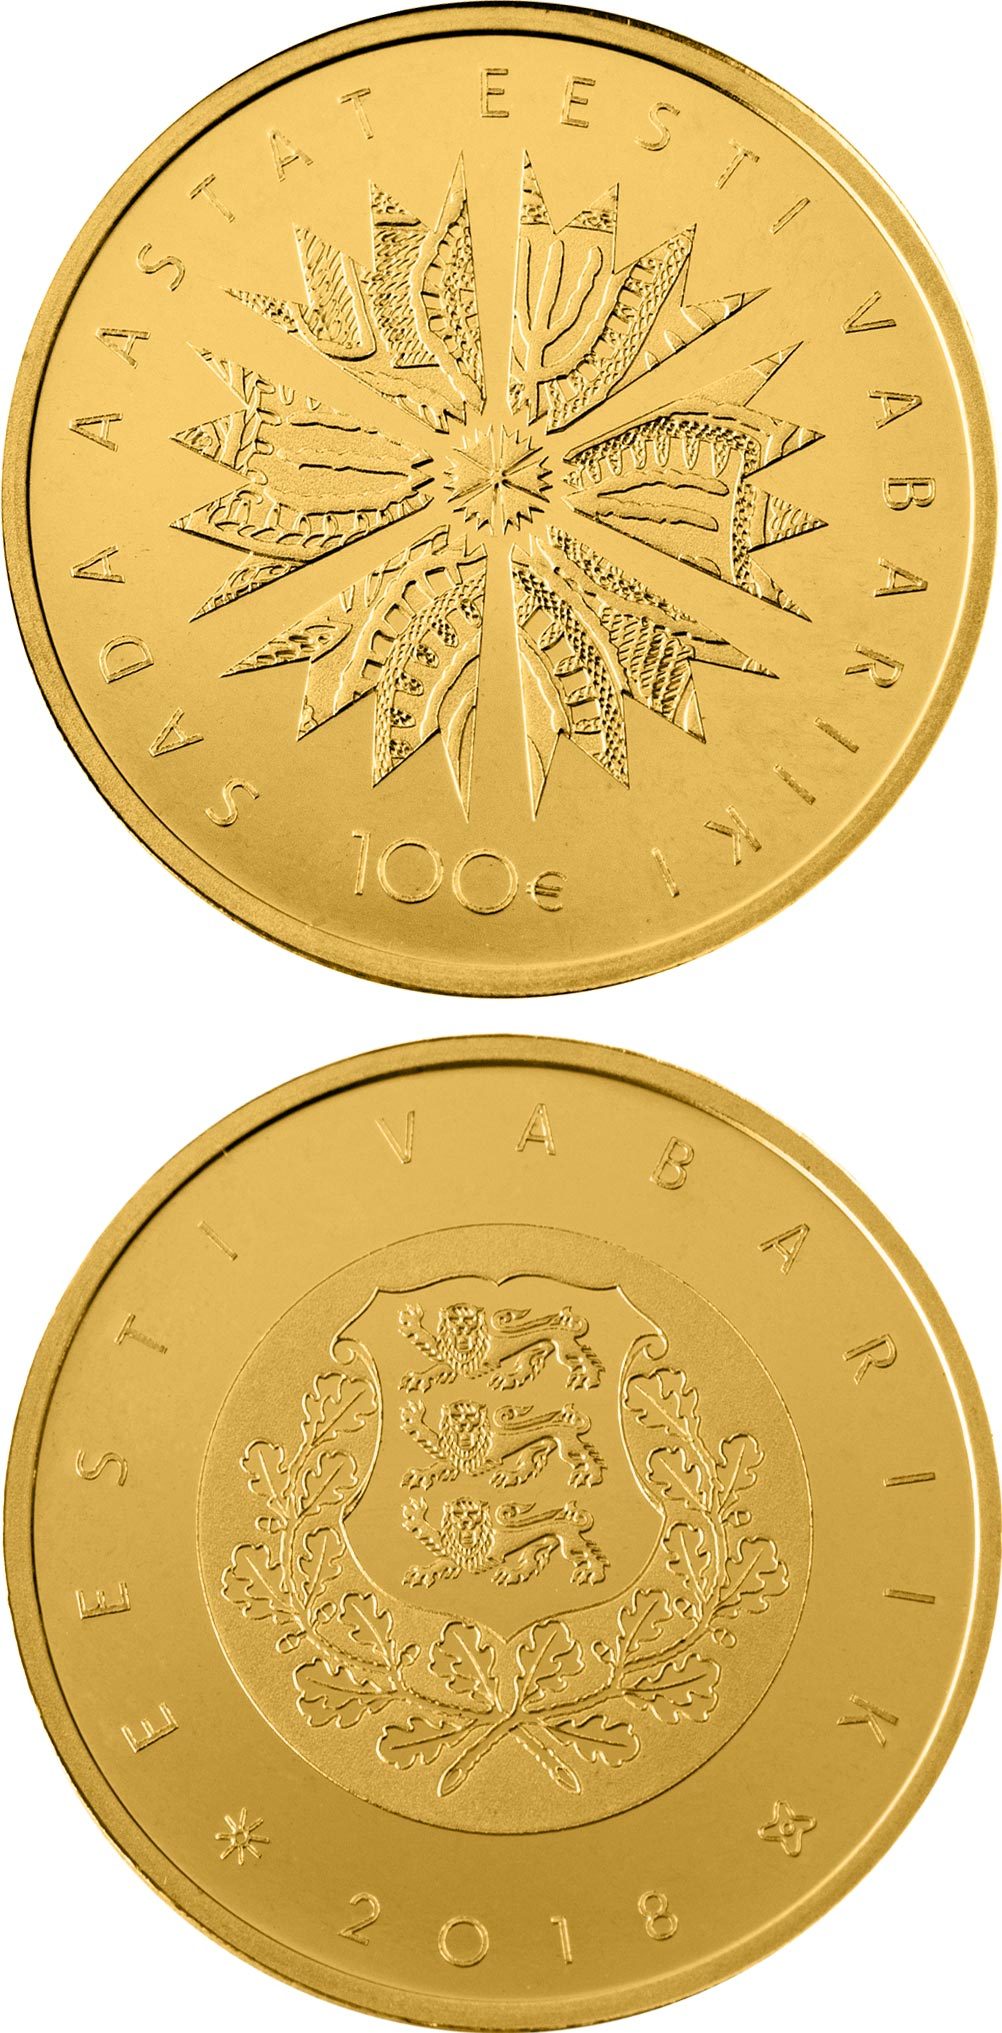 Image of 100 euro coin - 100th Anniversary of the Republic of Estonia | Estonia 2018.  The Gold coin is of Proof quality.